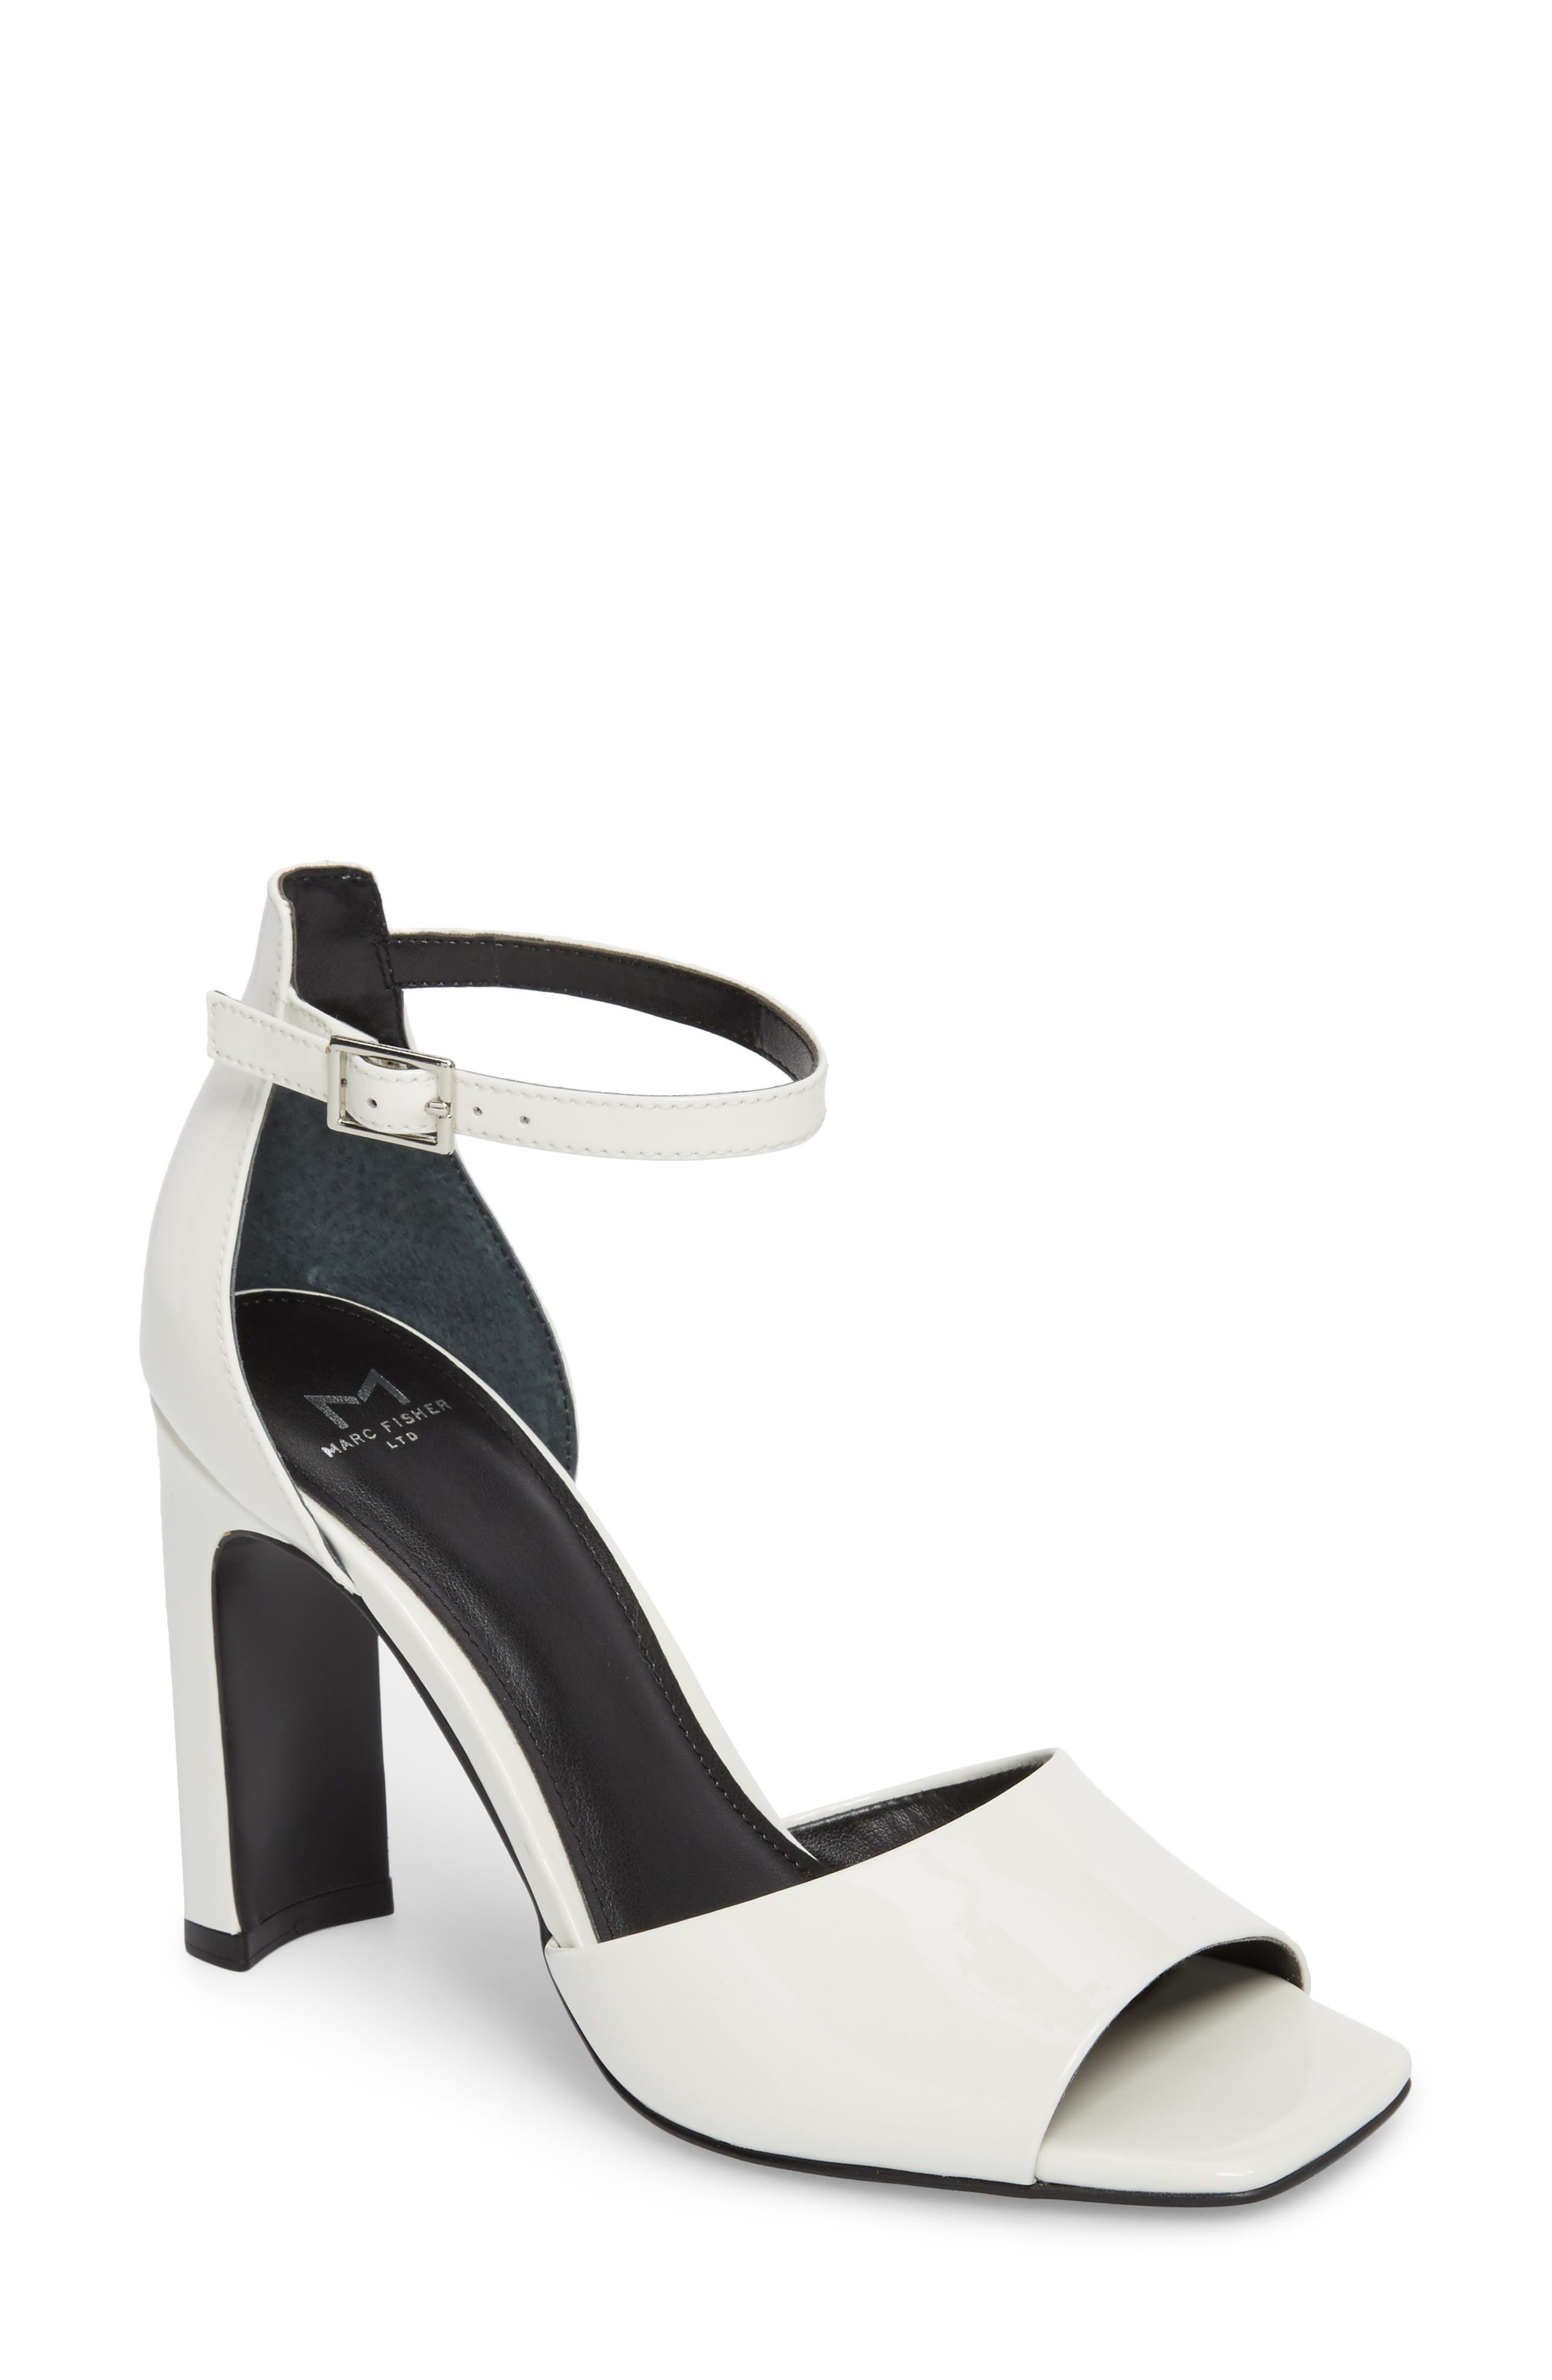 Harlin Ankle Strap Sandal,                         Main,                         color, White Patent